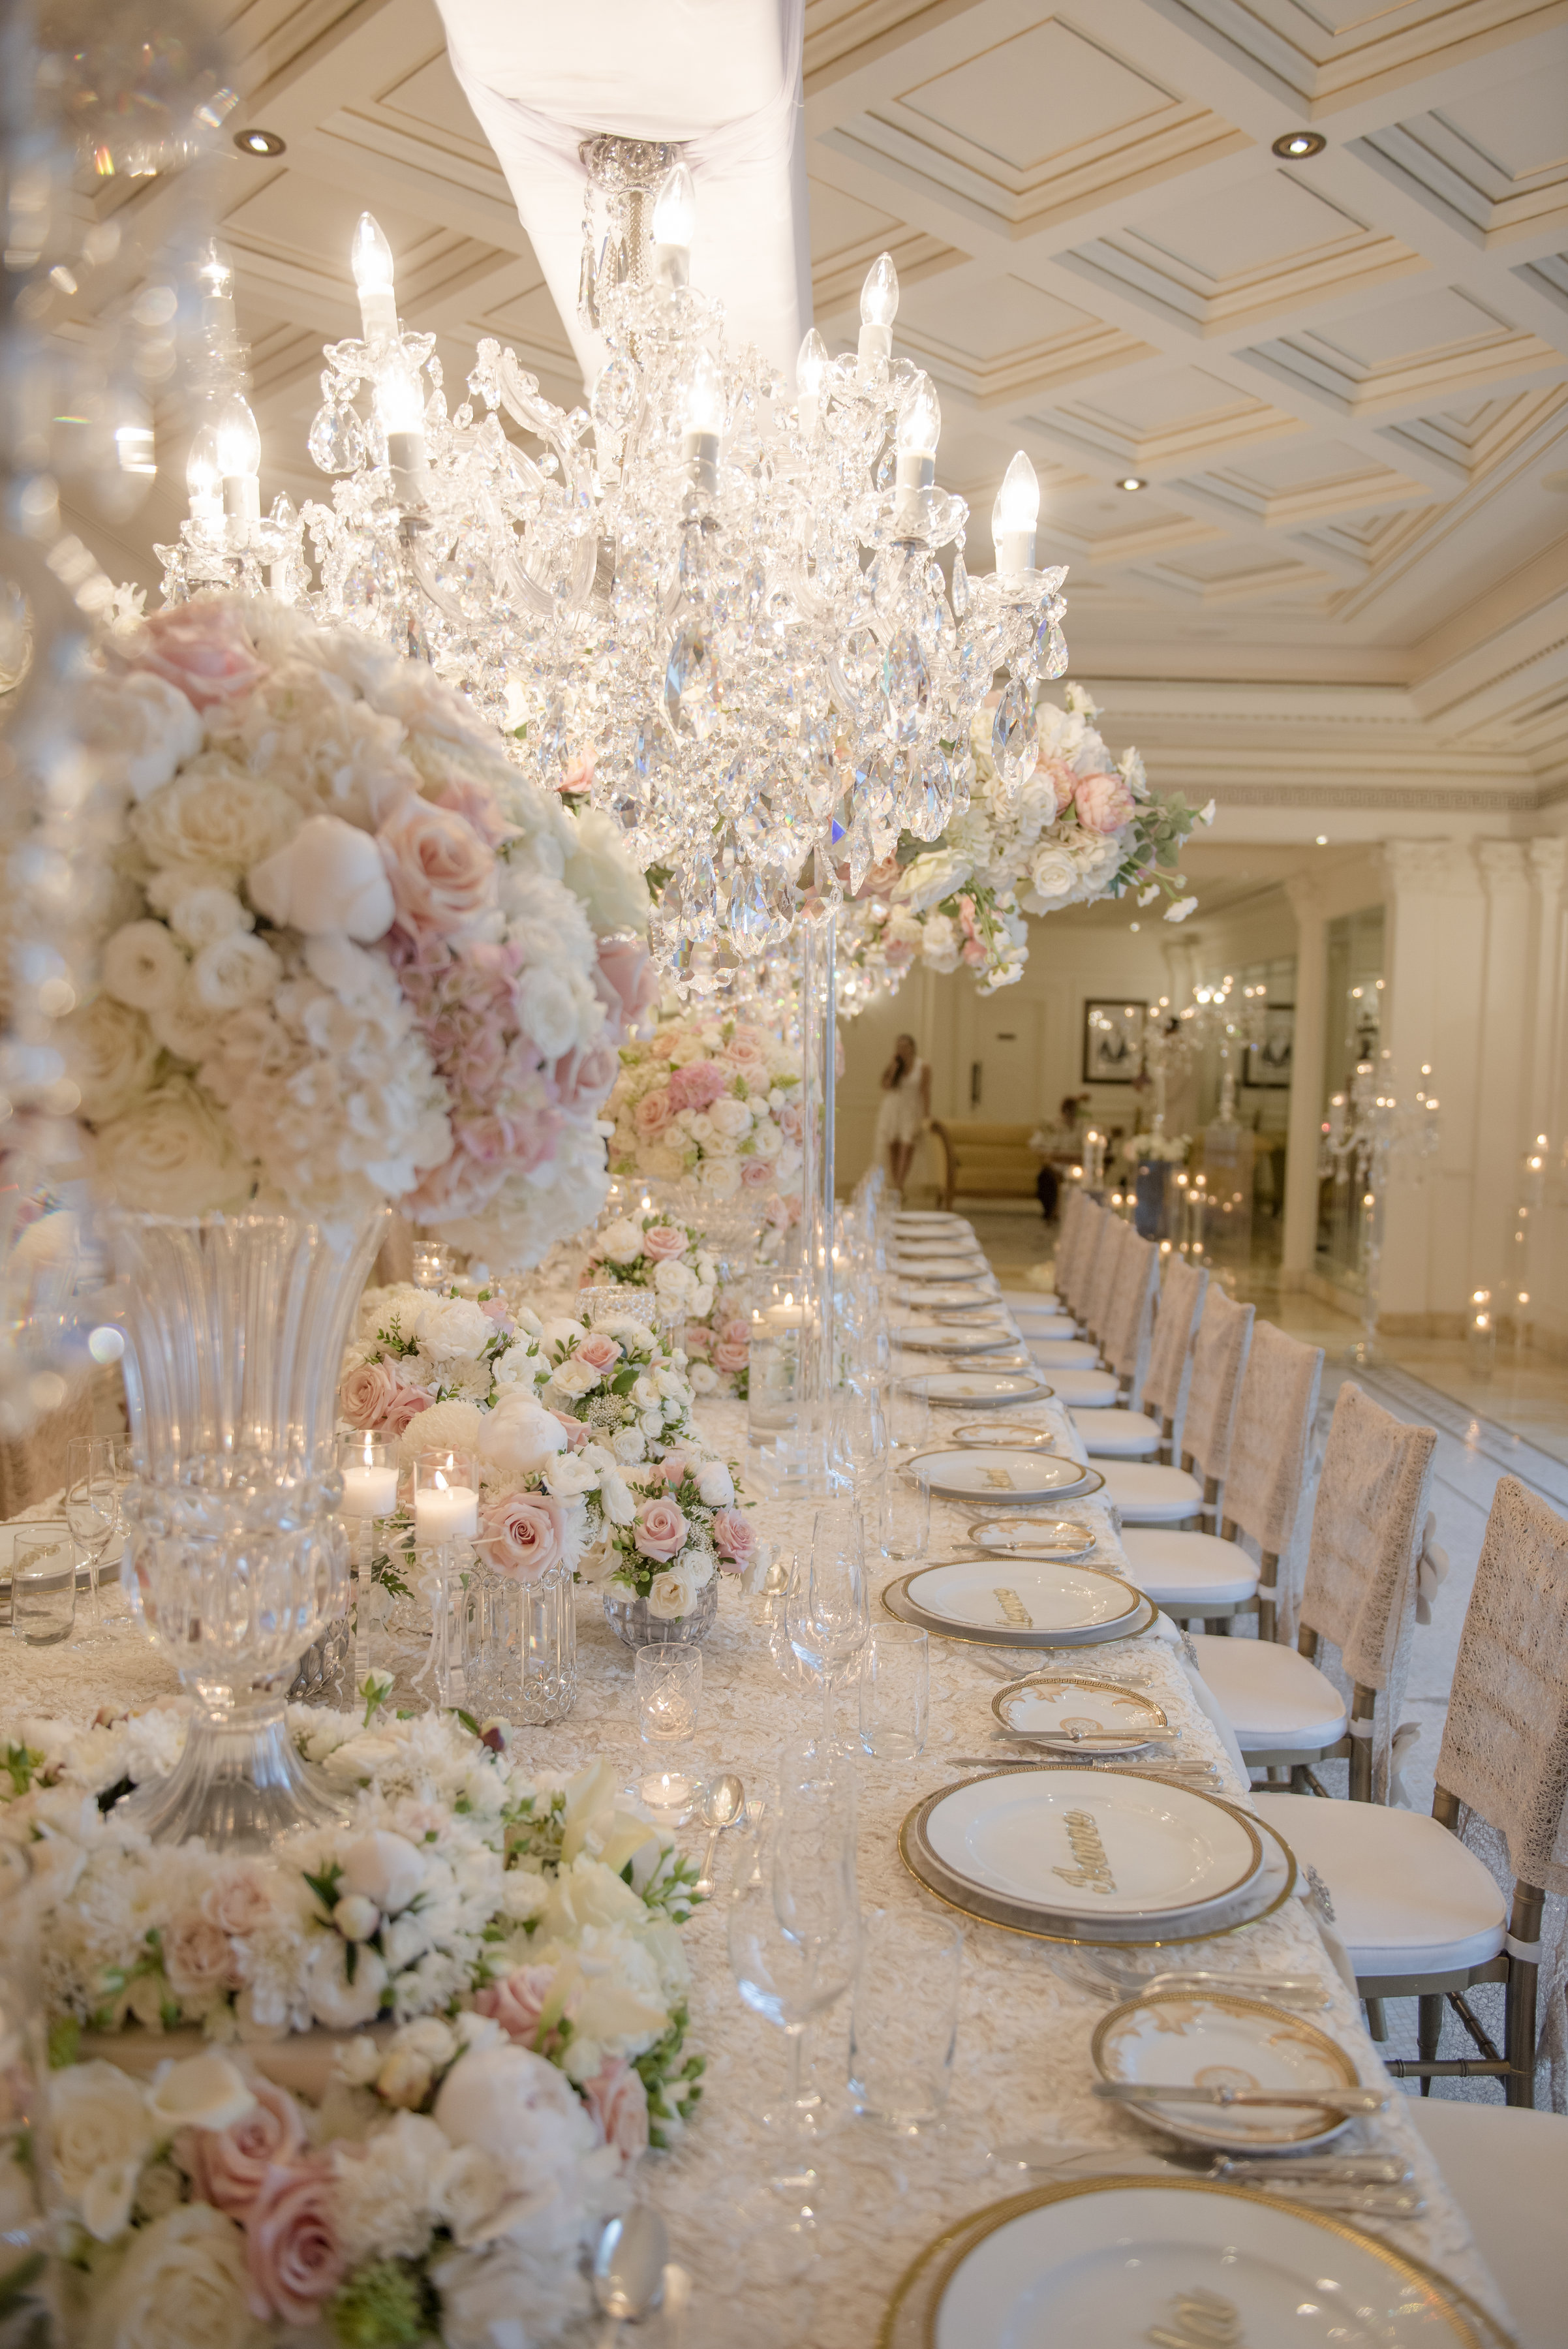 Hire_Ivory_rose_luxury_linen_sydney_wedding_decor_event_Versace_Decor_king_table_setting_charger_plates 1.jpg